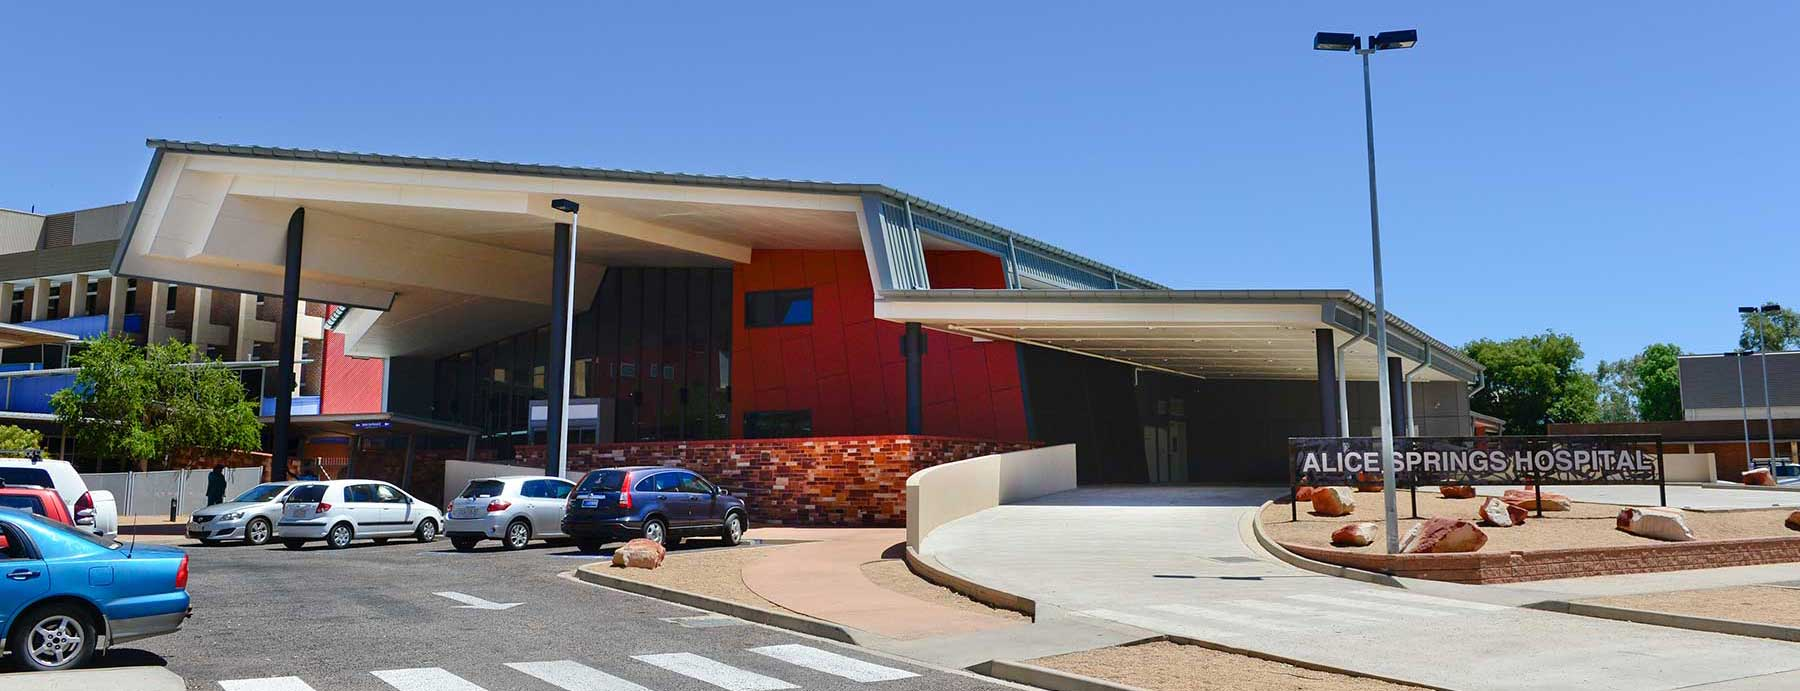 Outside view of Alice Springs Hospital